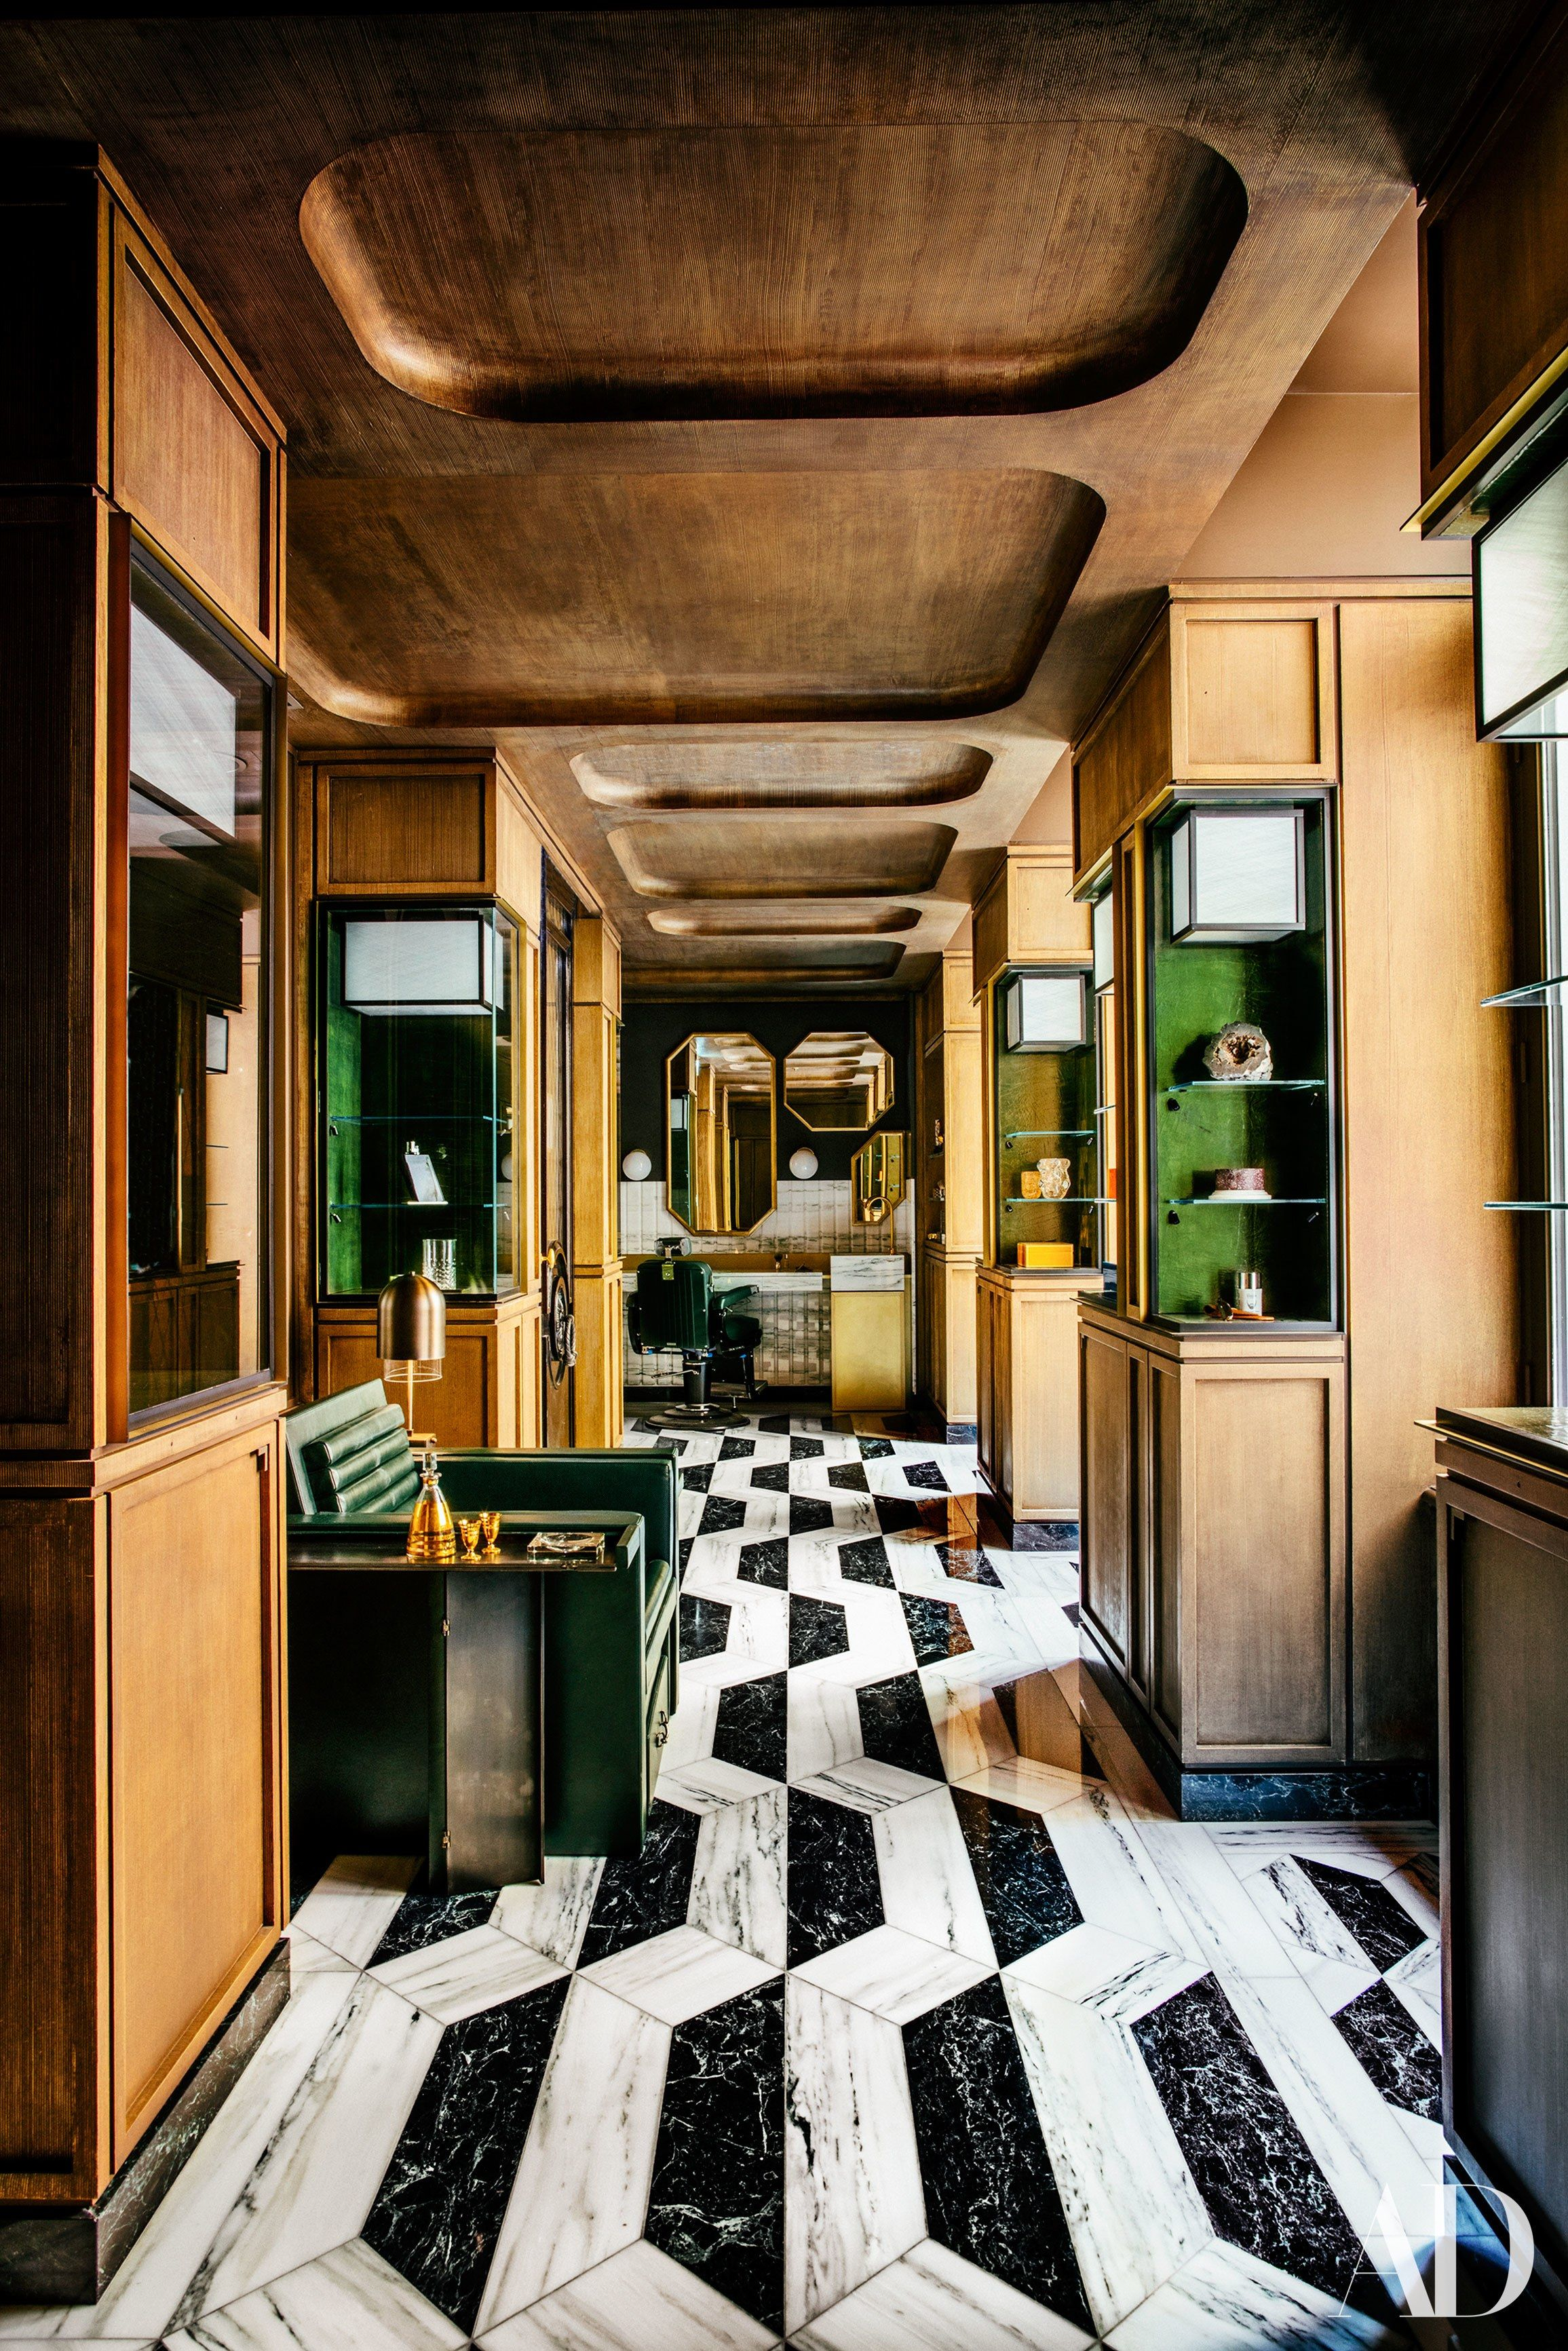 The renovation of pariss hotel de crillon photos architectural digest